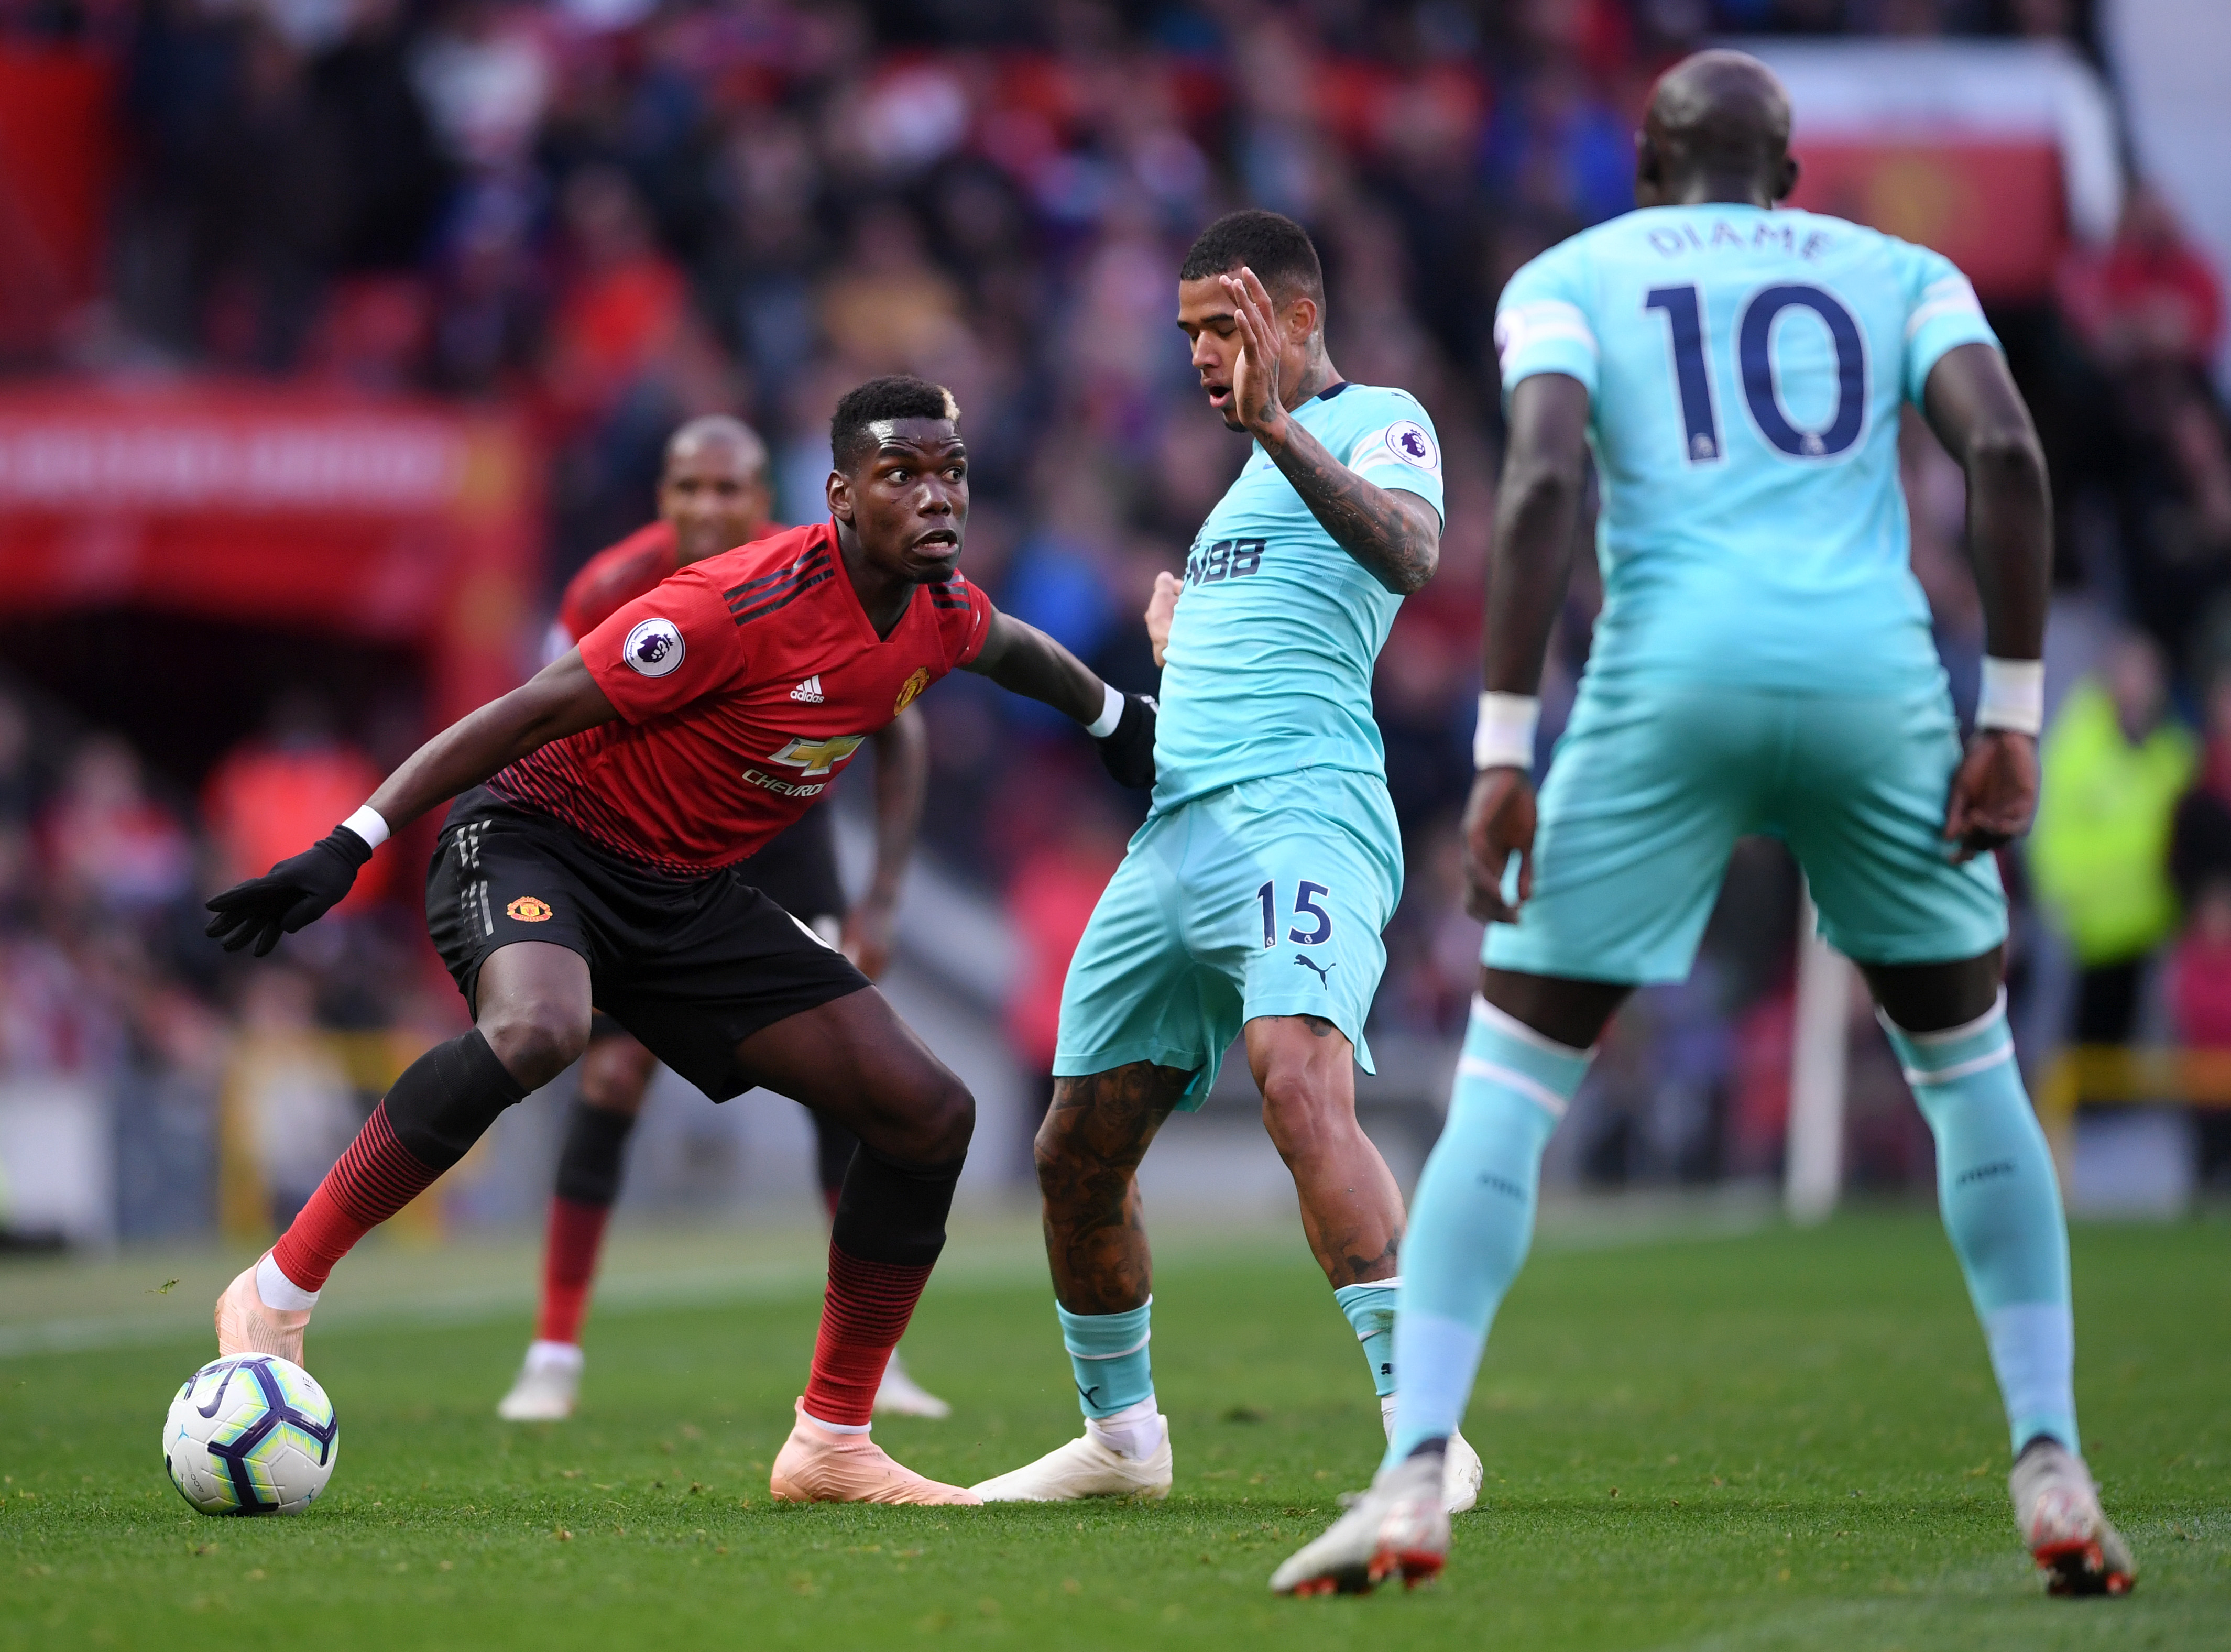 Jose Mourinho deserves no credit and Paul Pogba was right